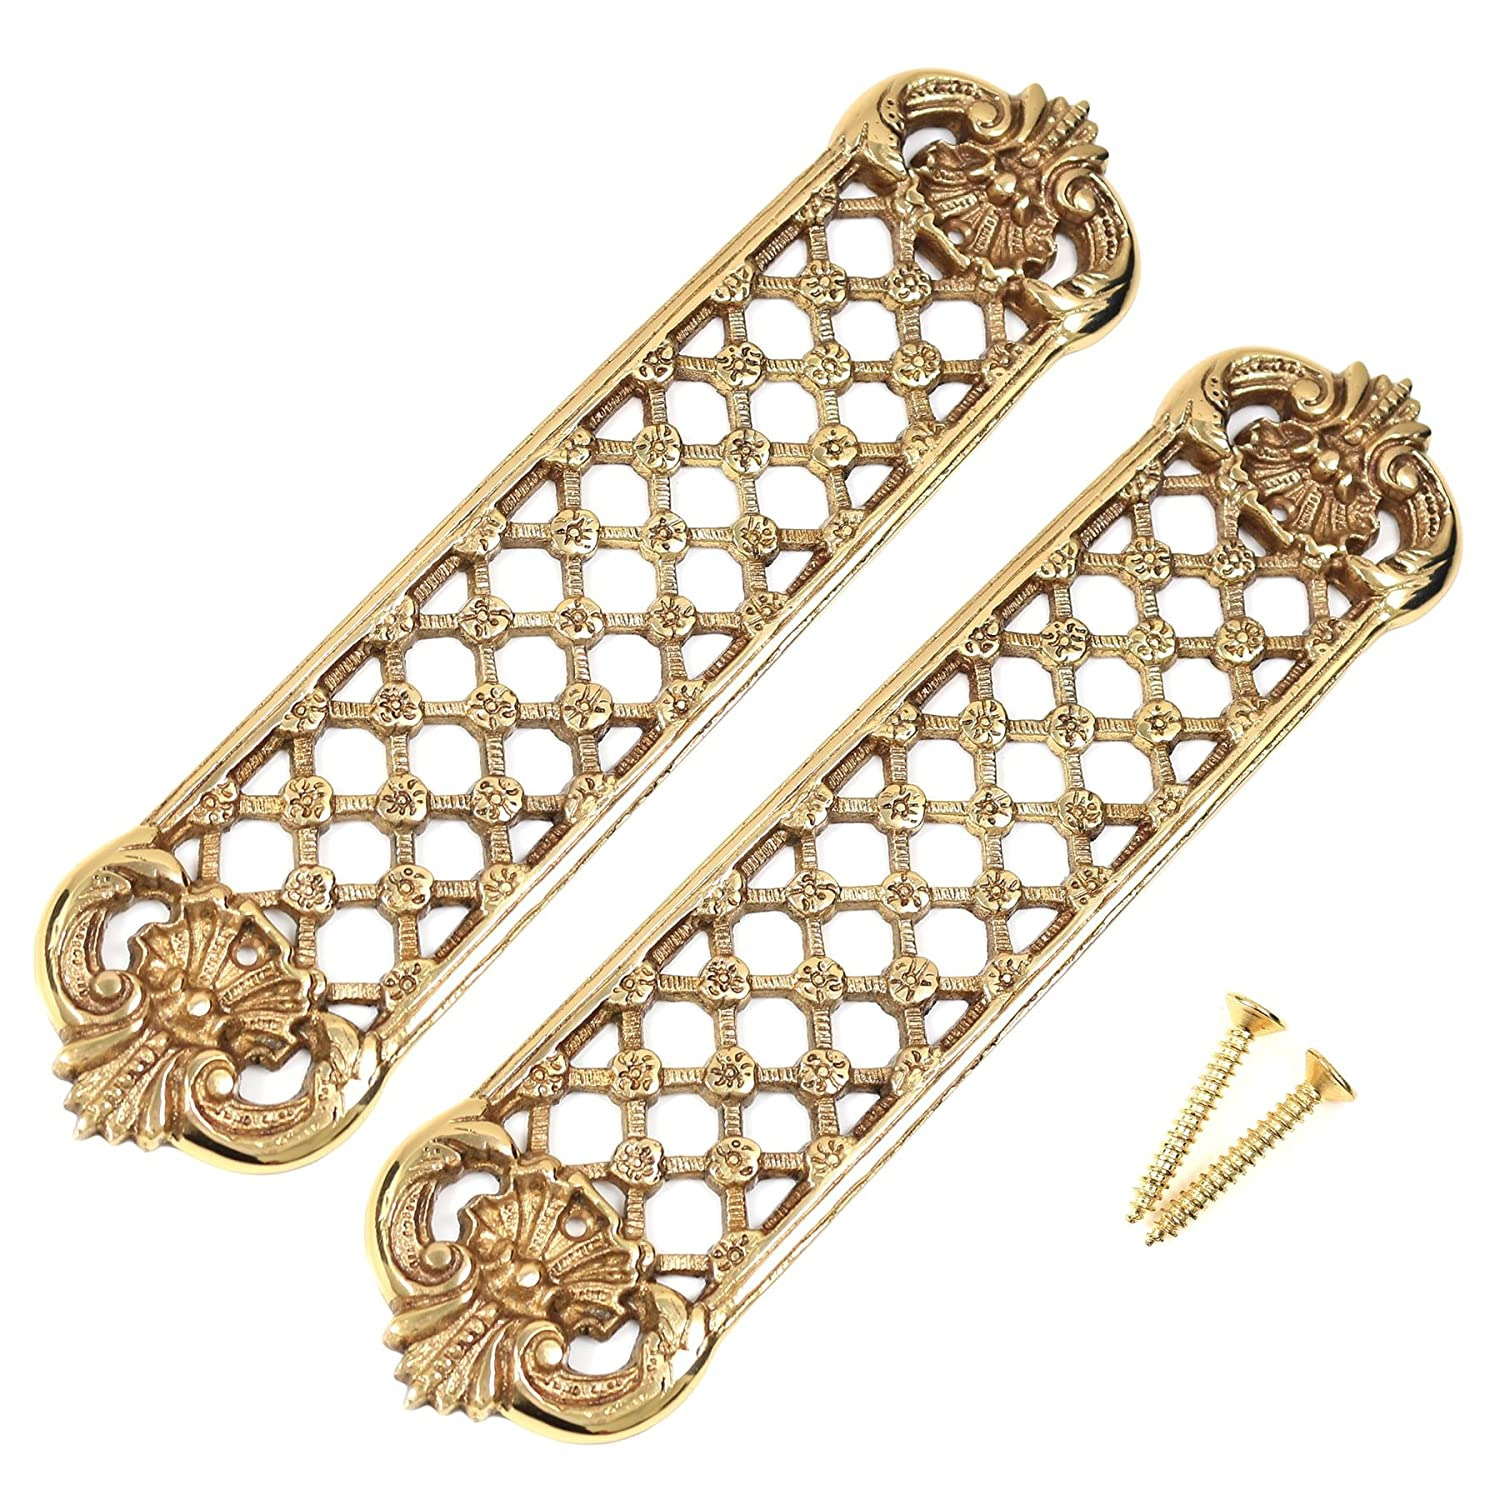 2x Large Trellis Solid Brass Finger/Push Plates - Heavyweight Victorian Door Pushes White Hinge